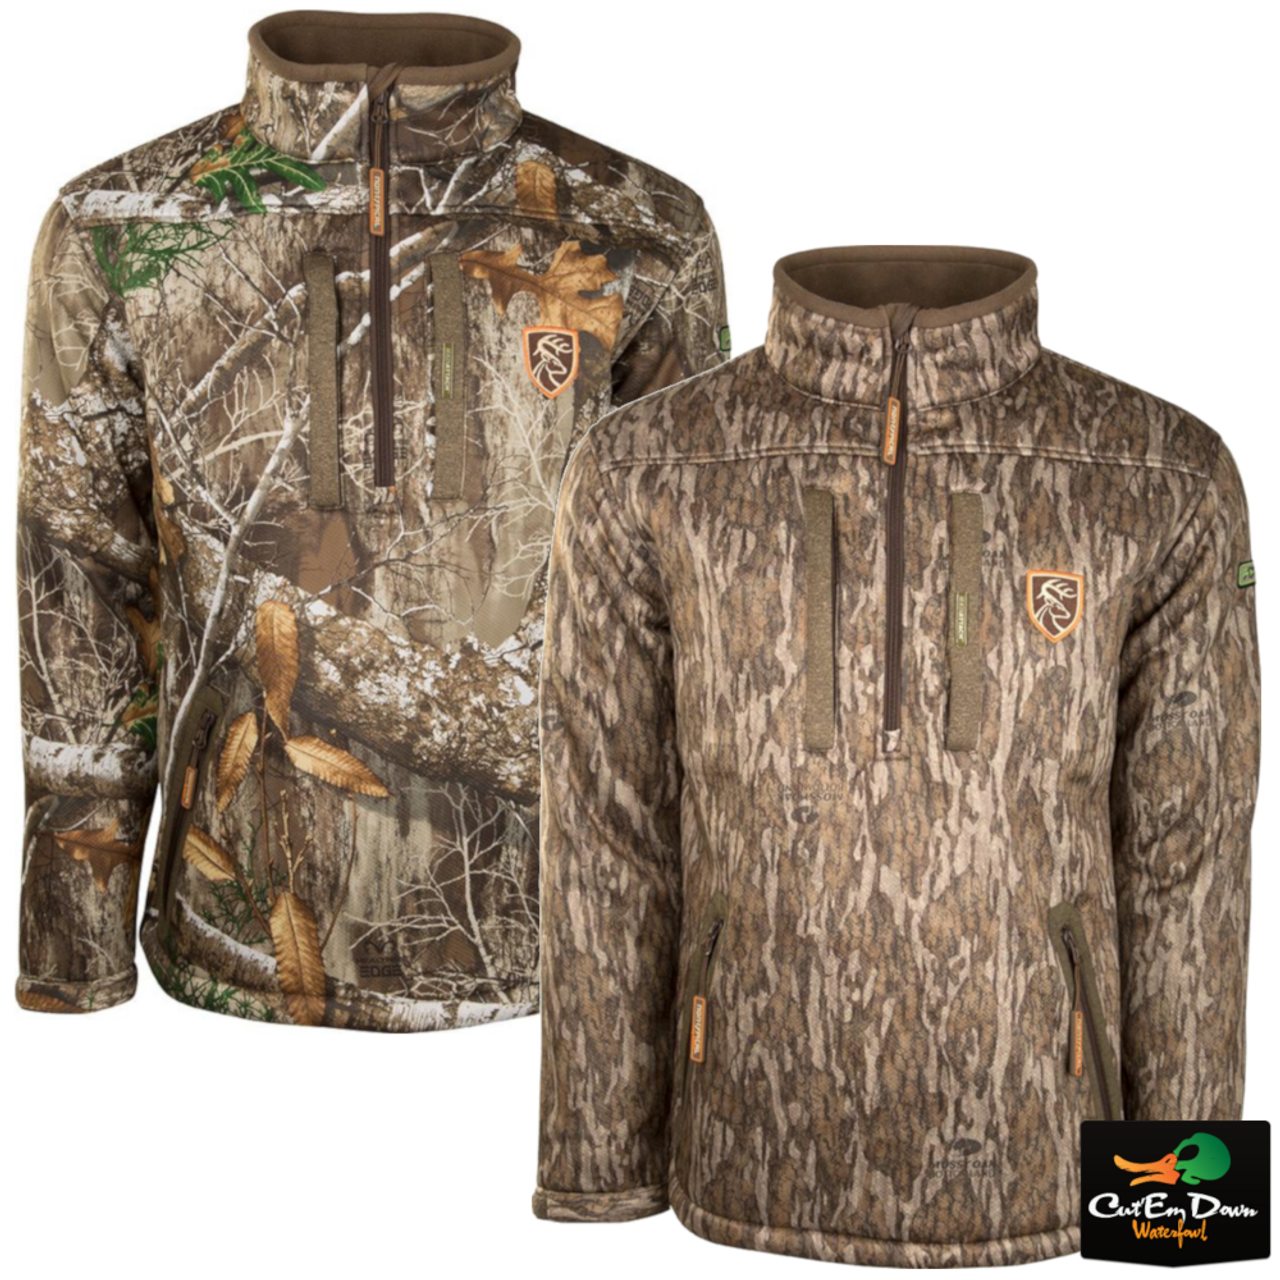 Details about DRAKE NON-TYPICAL SILENCER QUARTER 1/4 ZIP JACKET CAMO COAT  WITH AGION ACTIVE XL